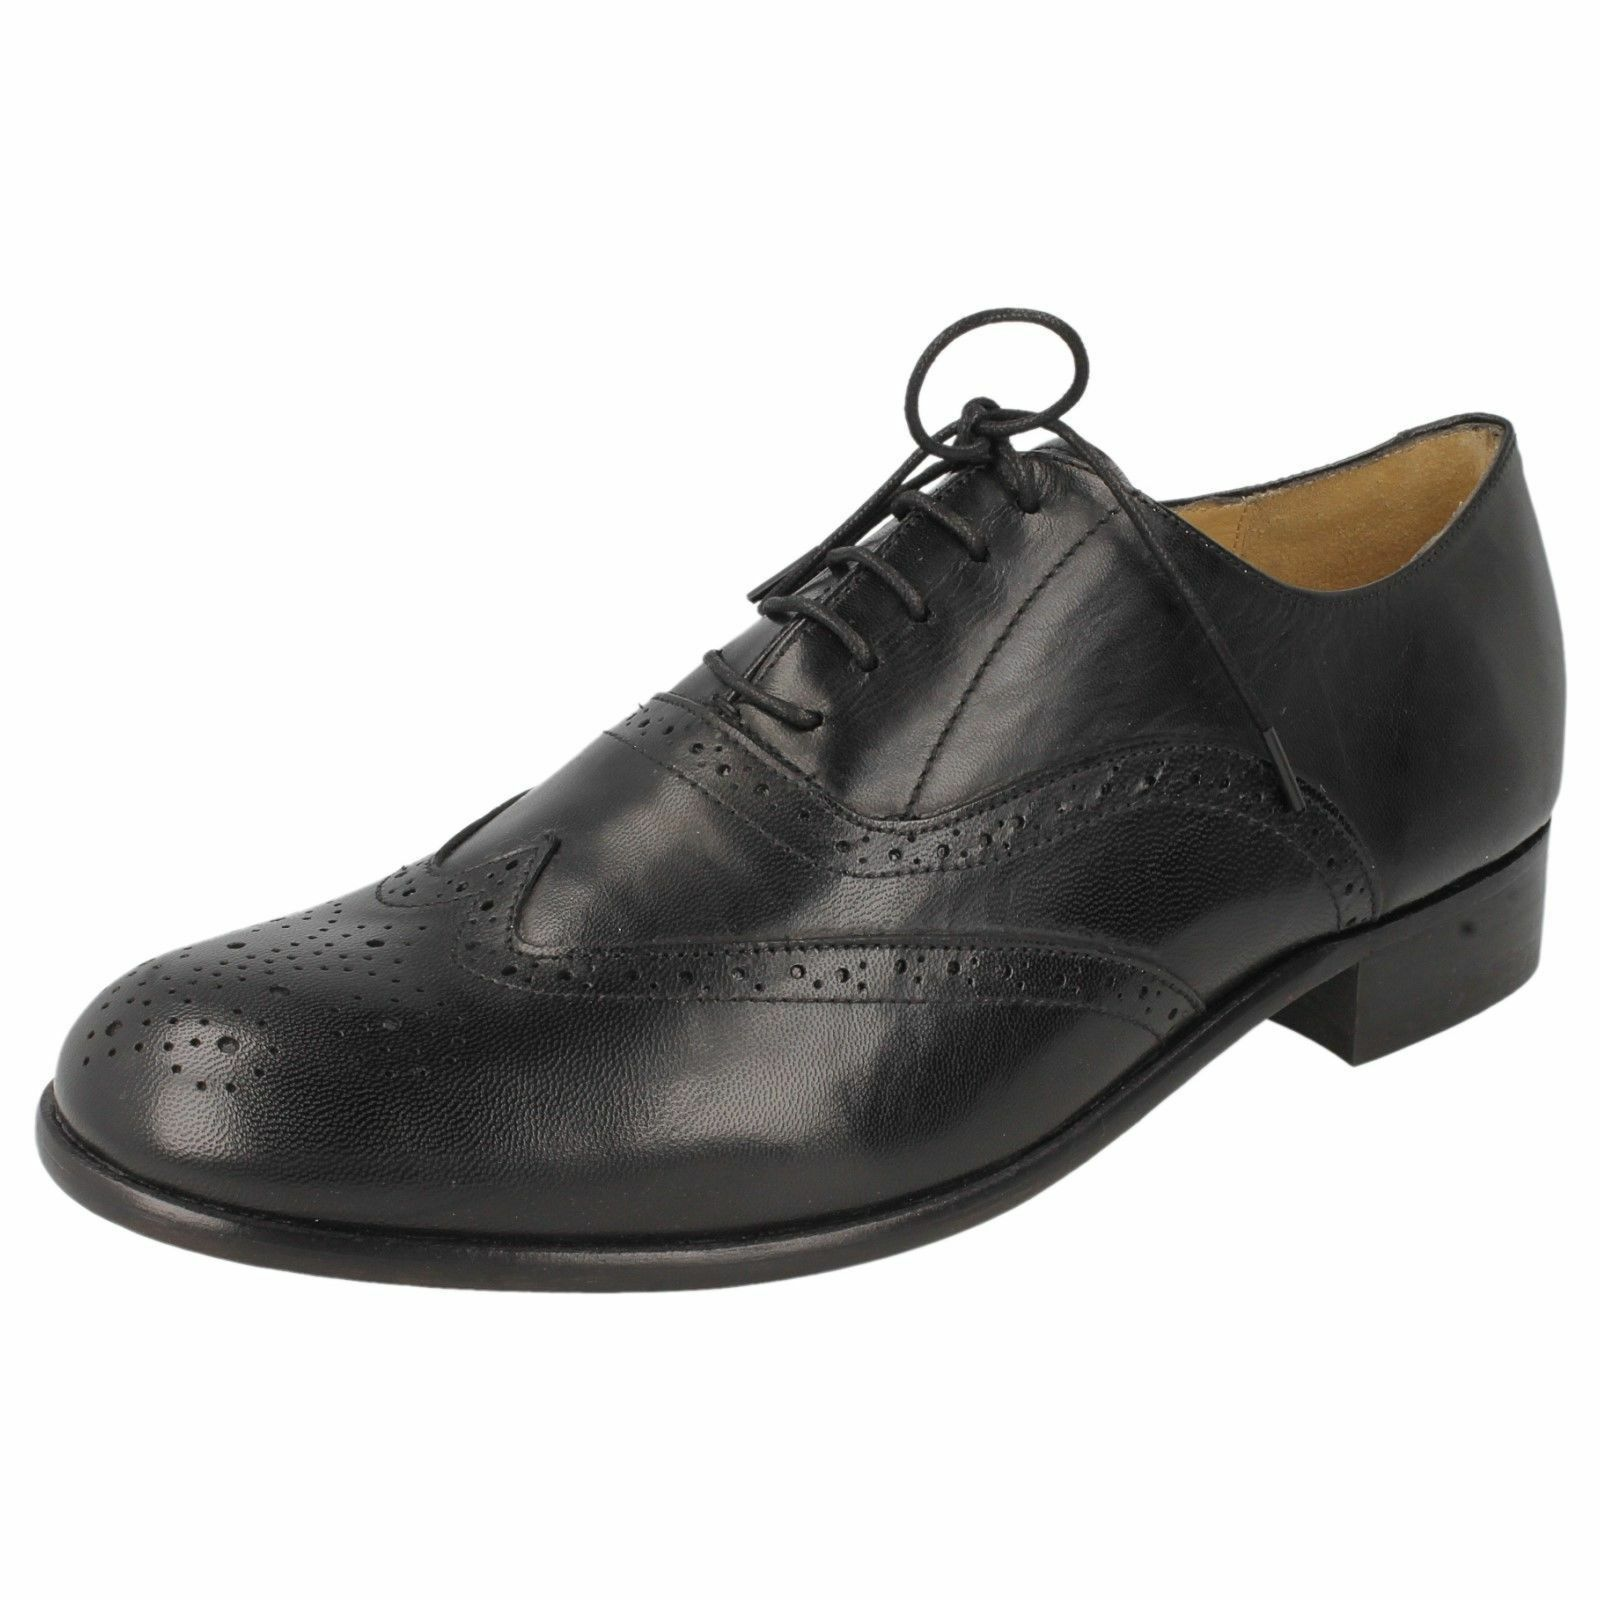 THOMBS BLUNT Euston Mens Leather Lace up Brogue